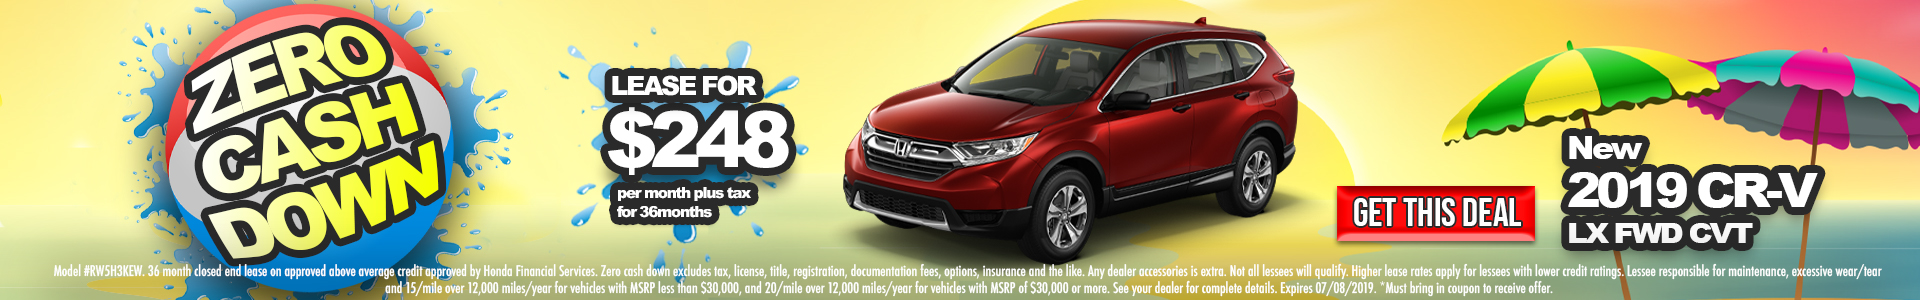 Honda CR-V $248 Lease